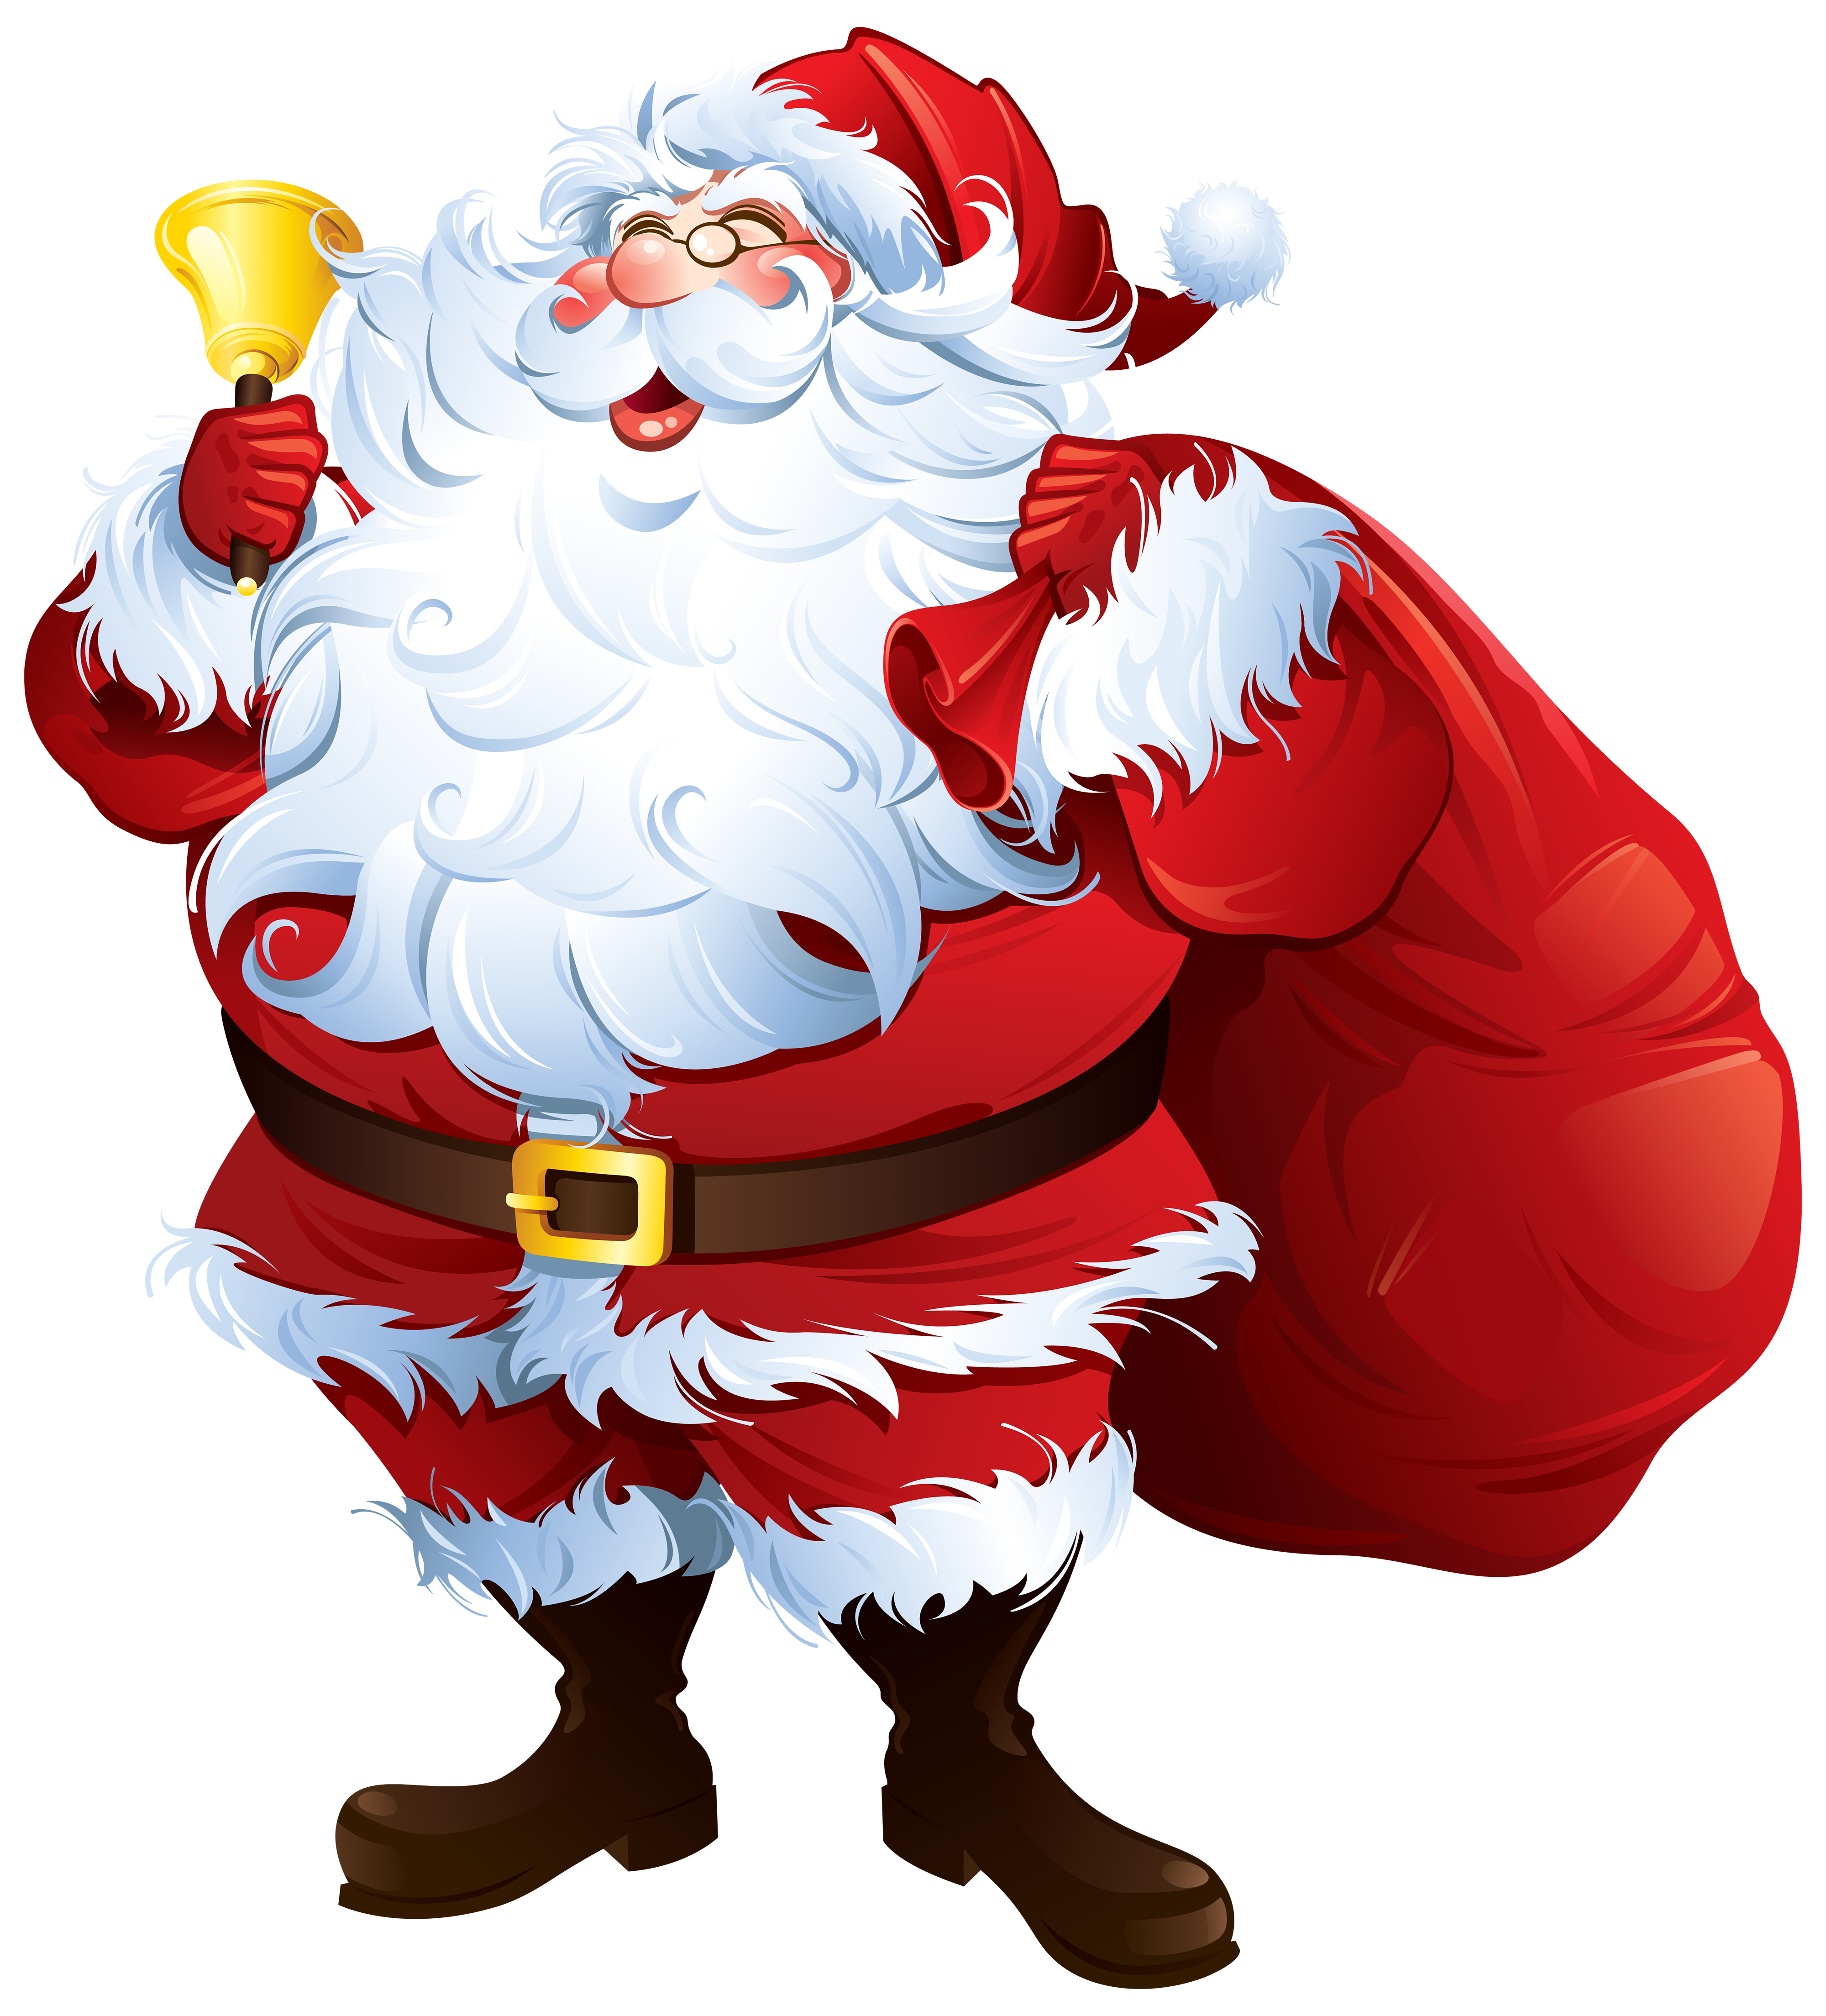 Santa clipart pizza. Claus with bell and